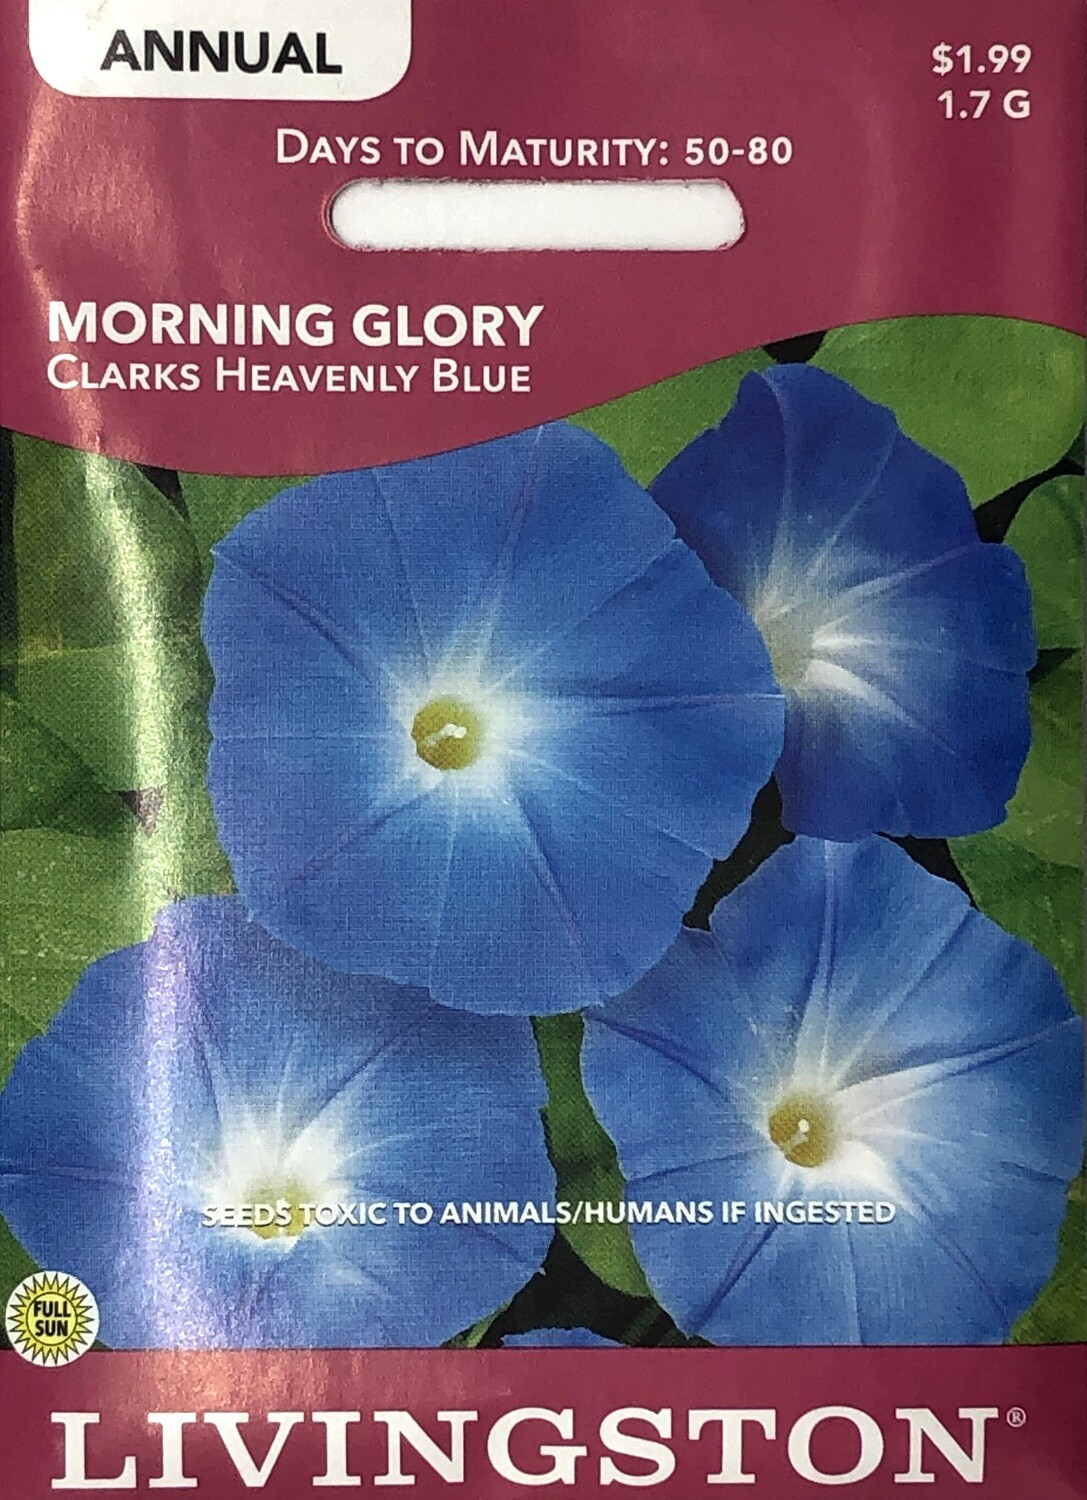 MORNING GLORY - CLARKS HEAVENLY BLUE